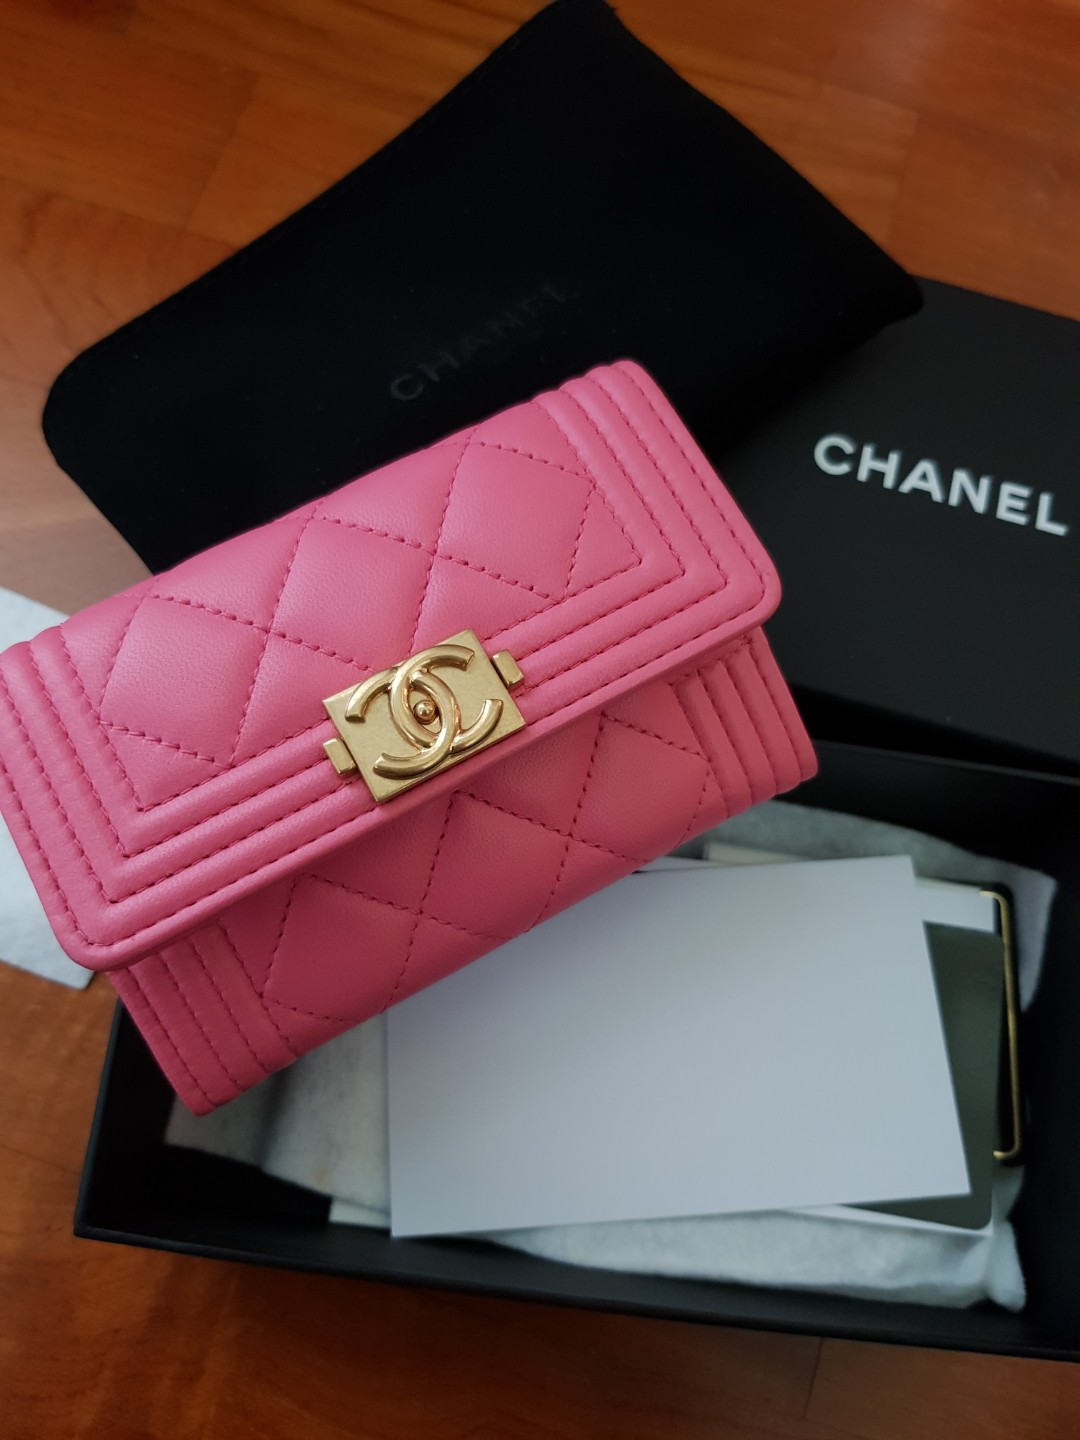 bfef85f89b38 Chanel Boy cardholder, Luxury, Bags & Wallets on Carousell